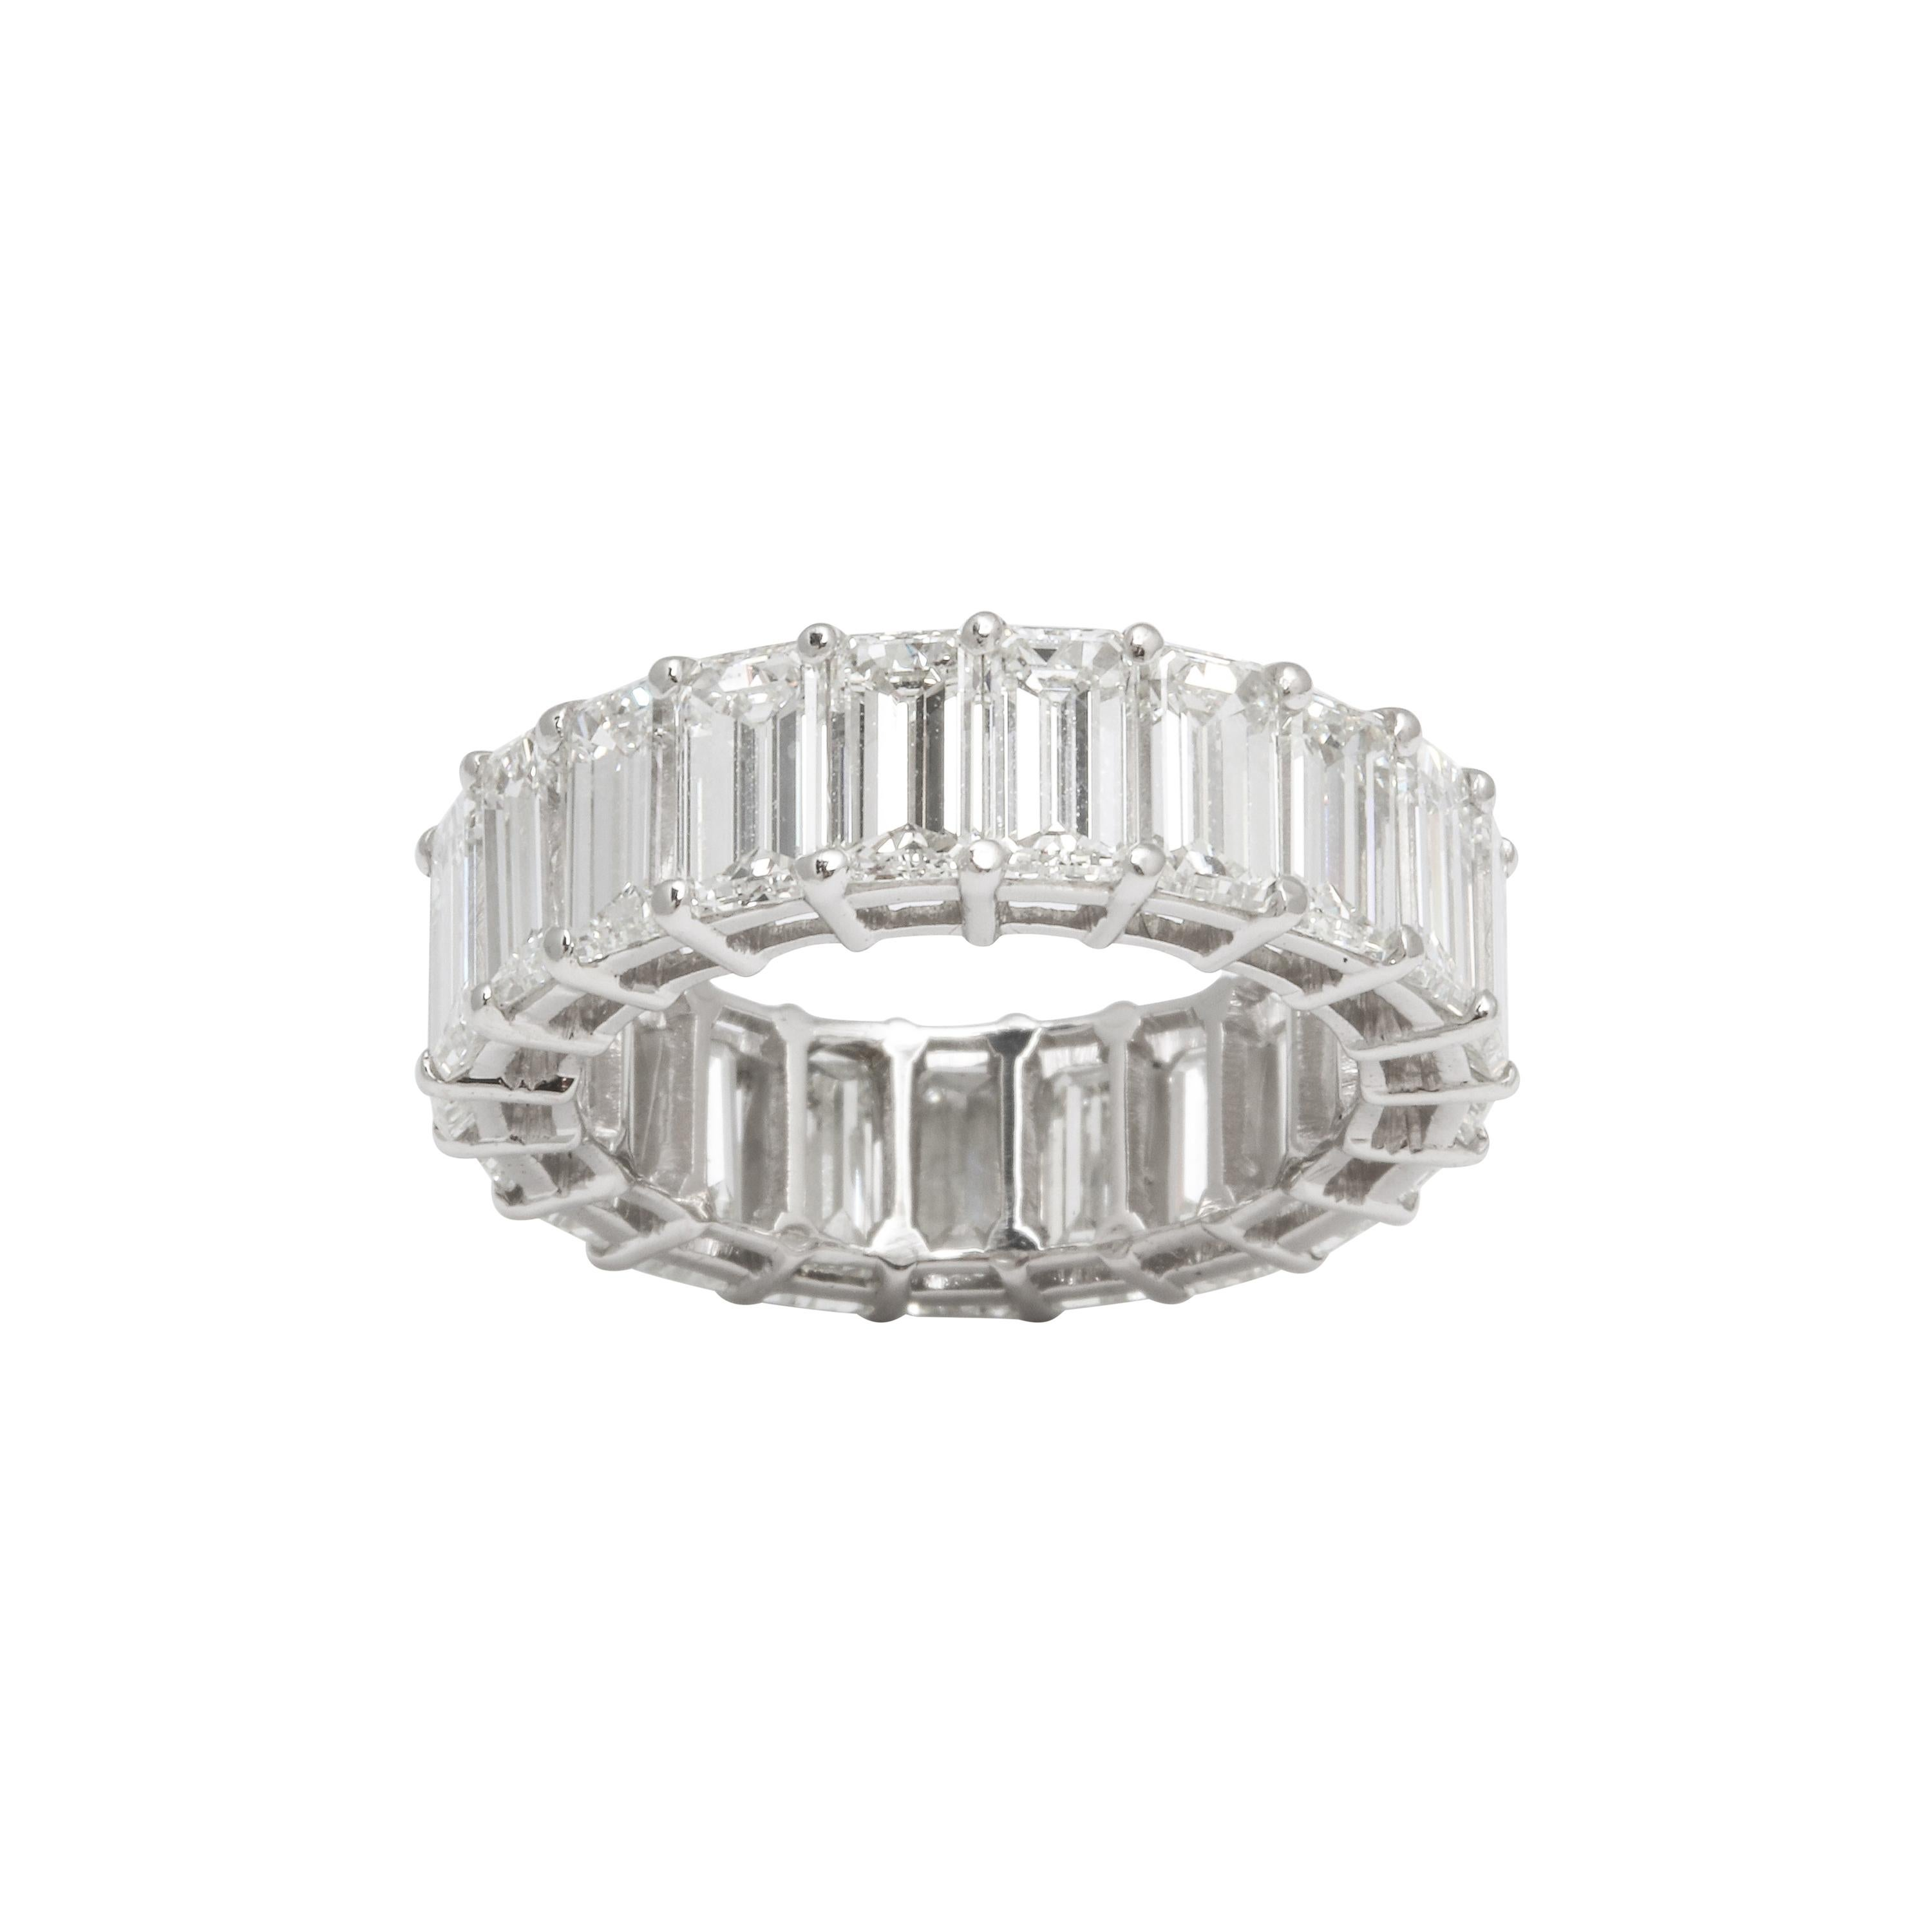 11 Carat Emerald Cut Diamond Eternity Band